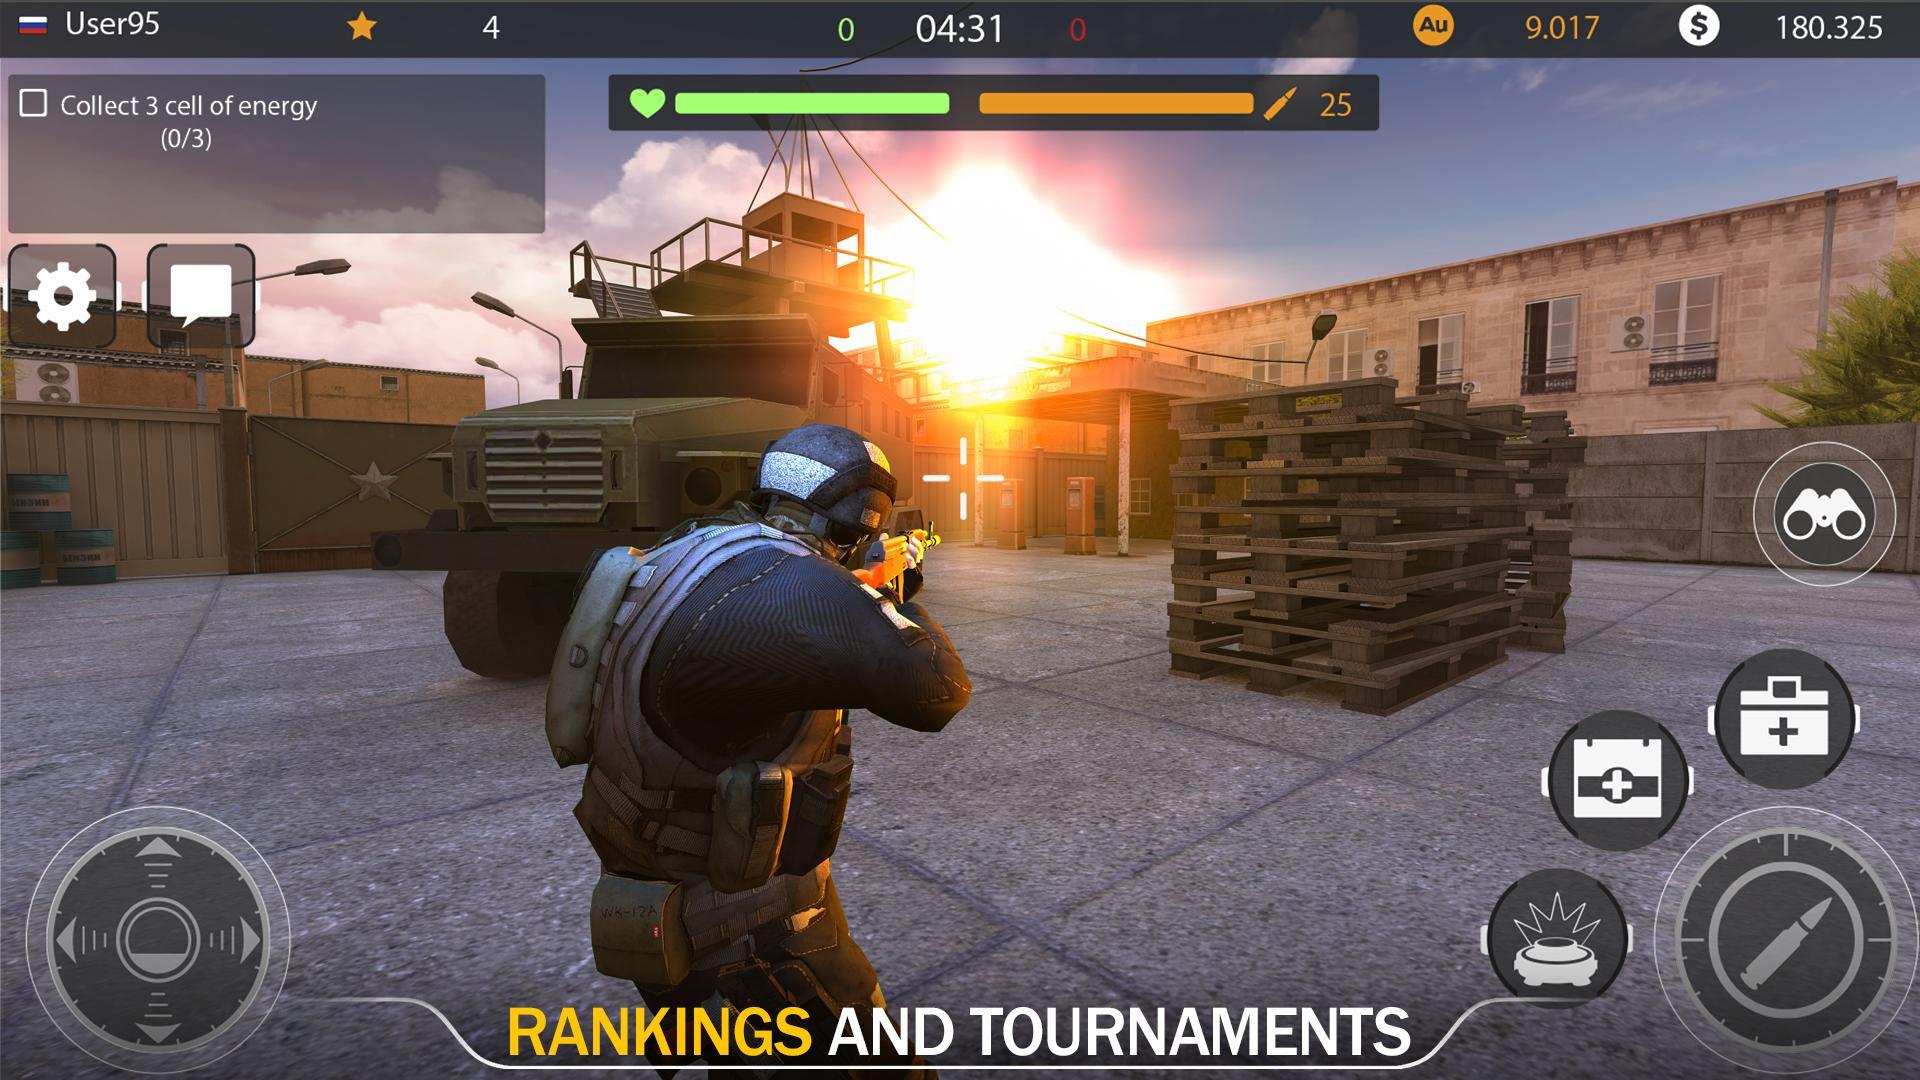 Code of War: Online Shooter Game 3.14.6 Screenshot 4